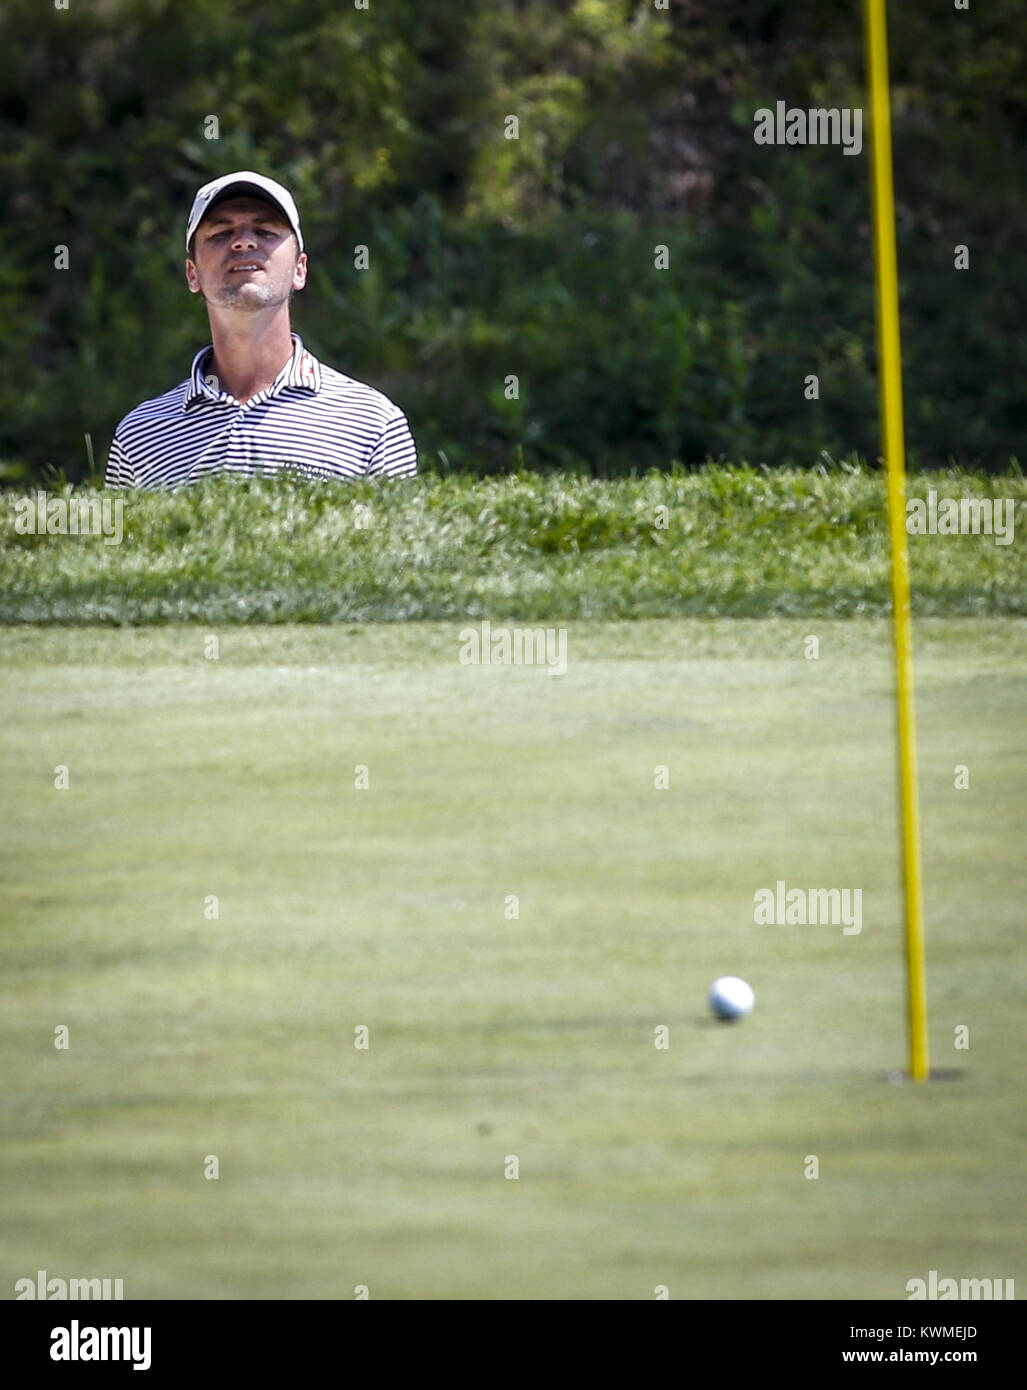 Davenport, Iowa, USA. 10th Aug, 2016. Professional Golfer Sean O'Hair watches his ball after chipping out of - Stock Image